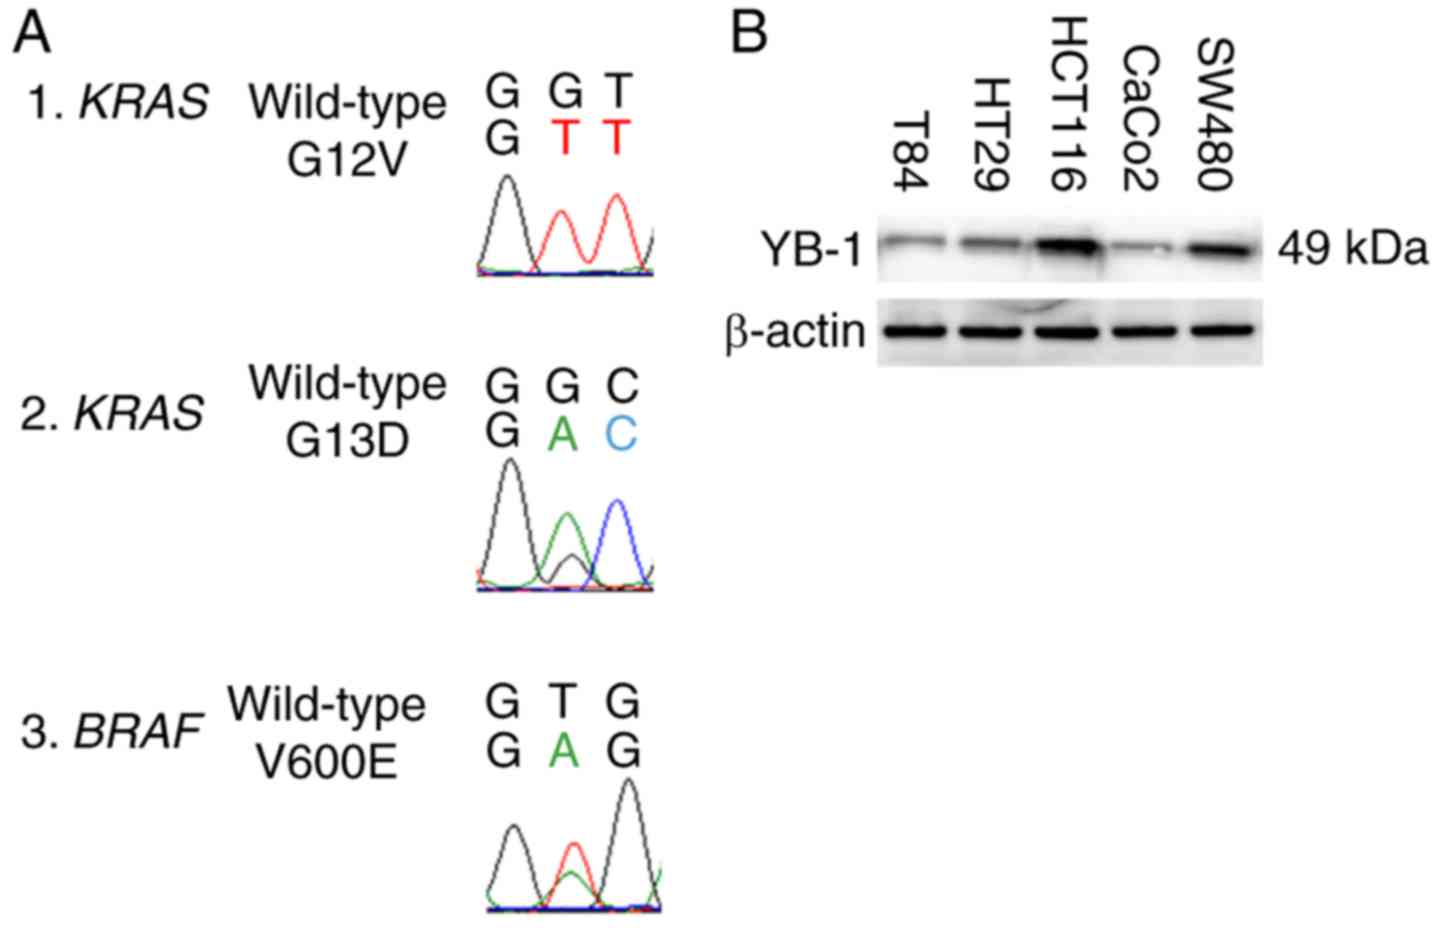 Y Box Binding Protein 1 Inhibits Apoptosis And Upregulates Egfr In Colon Cancer